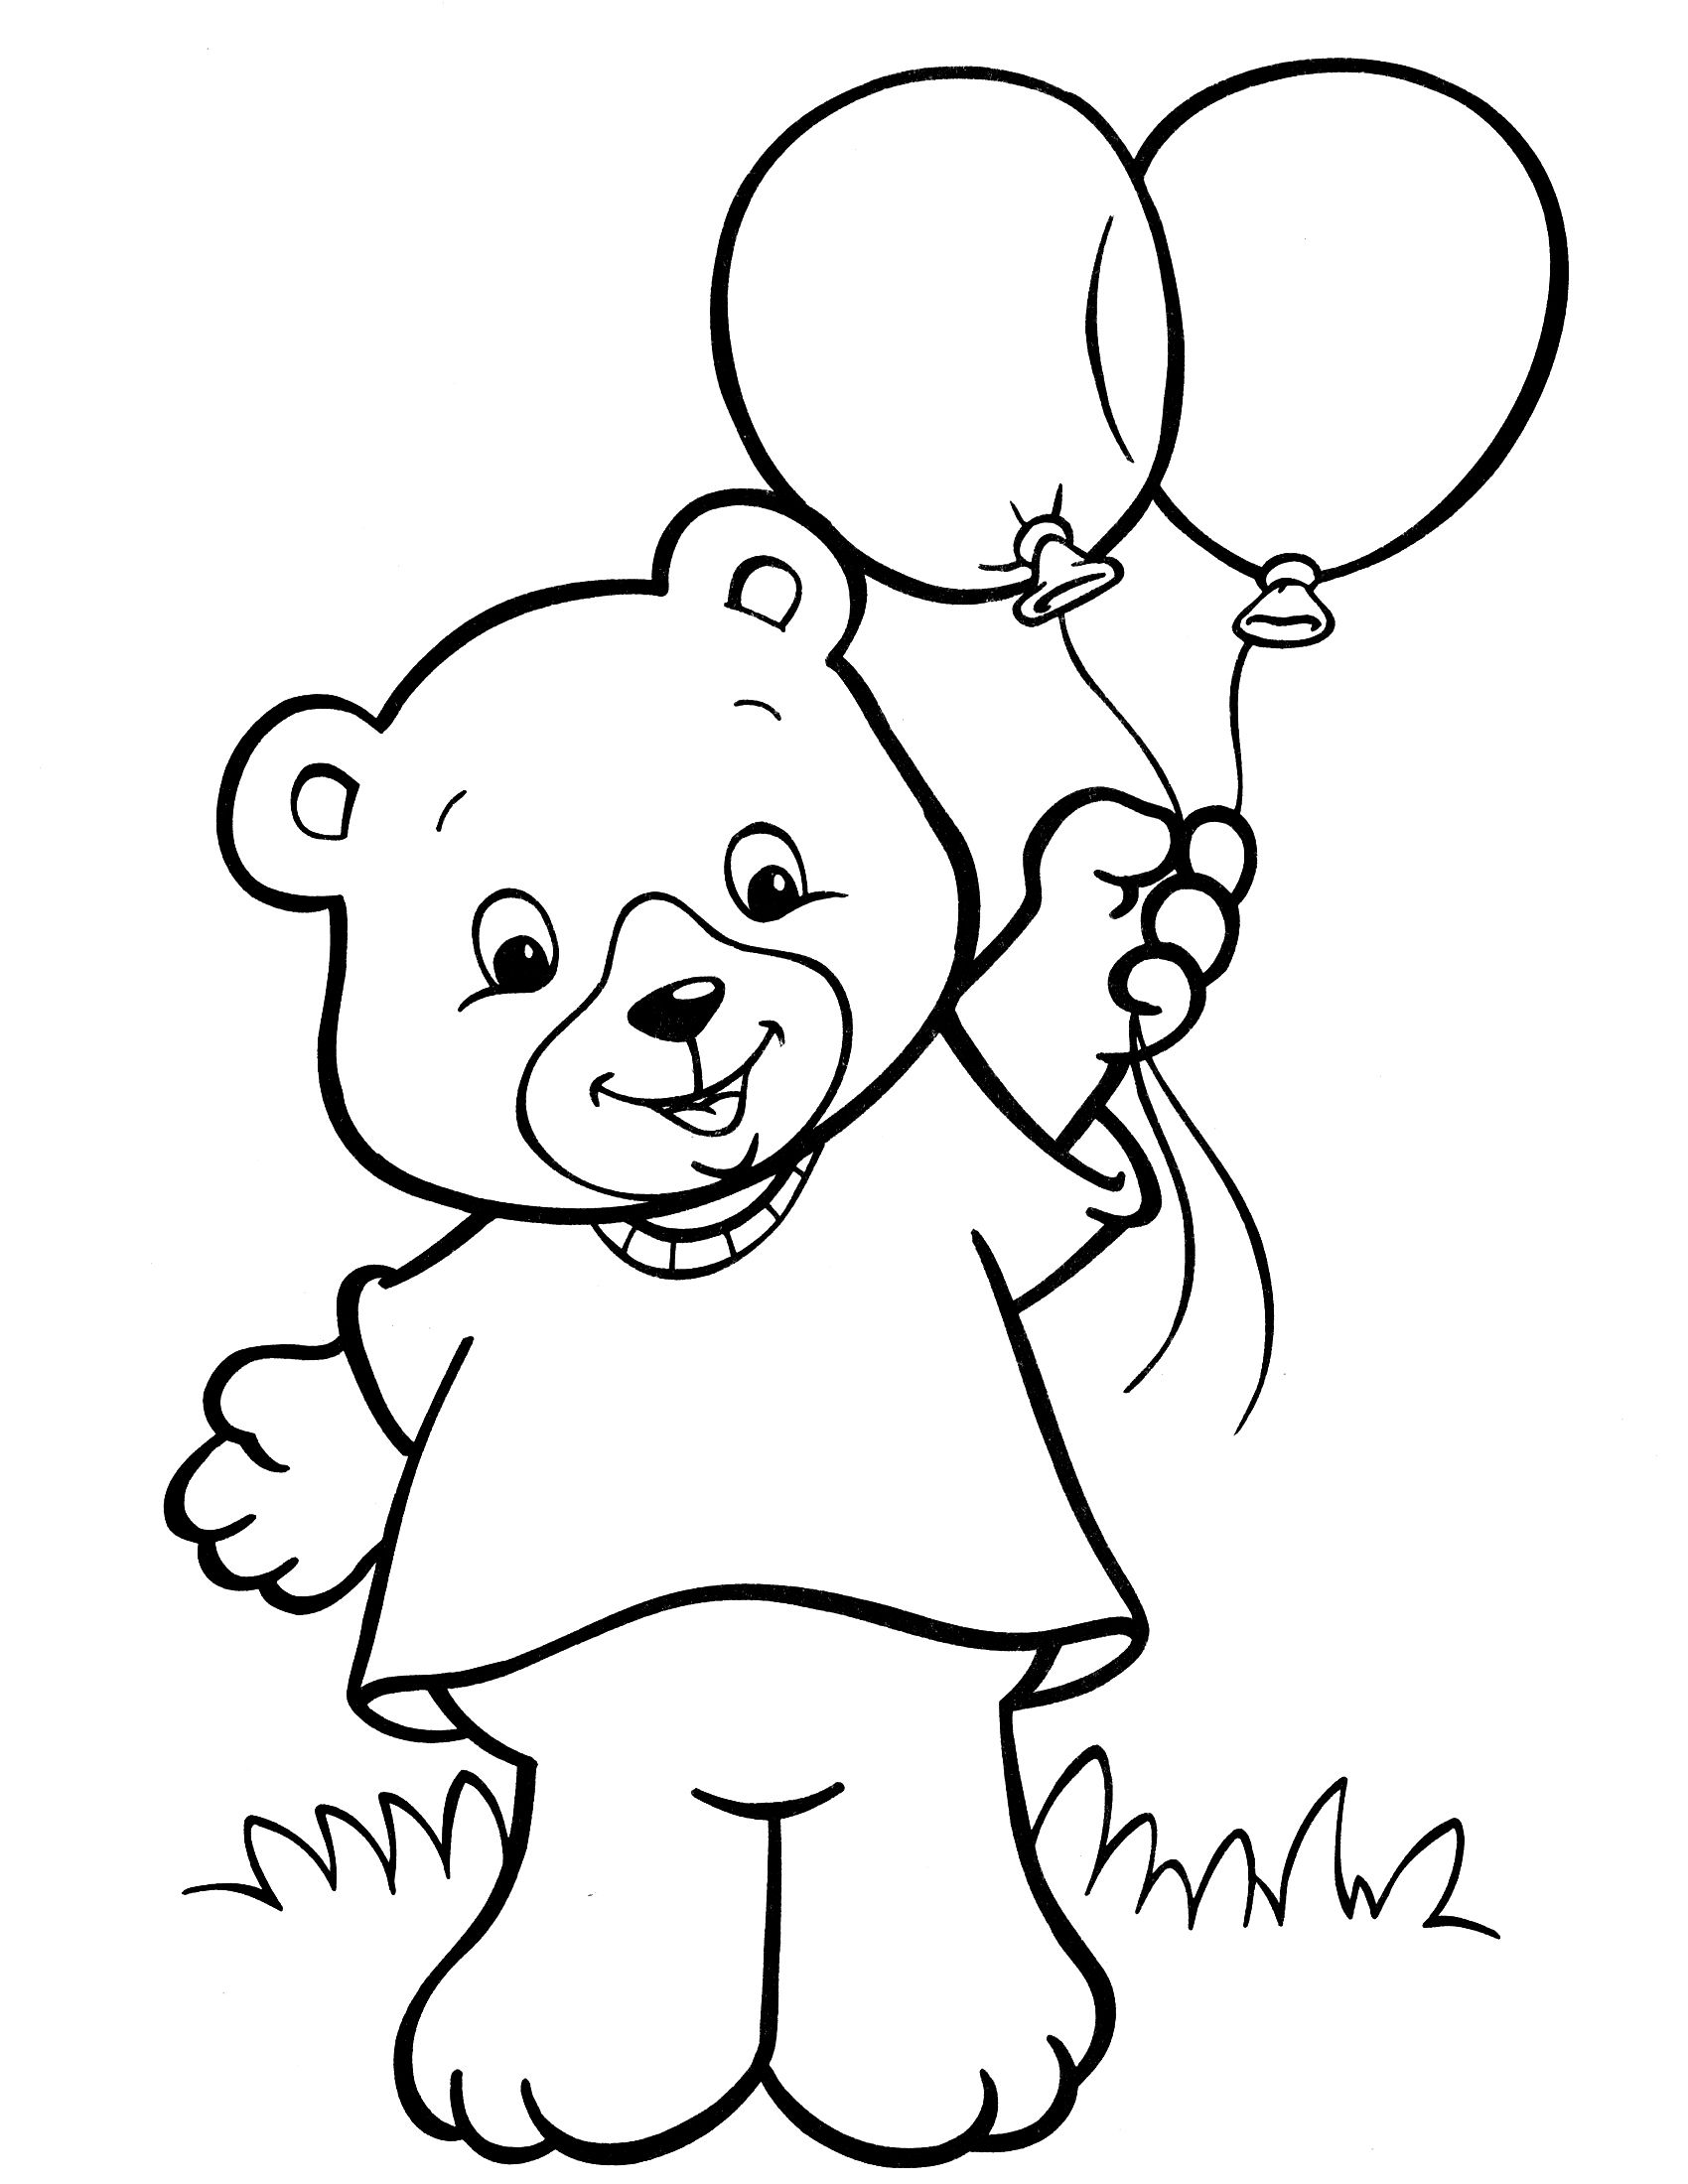 coloring pages for 7 year olds coloring pages for seven year old boys print them online for 7 pages coloring olds year